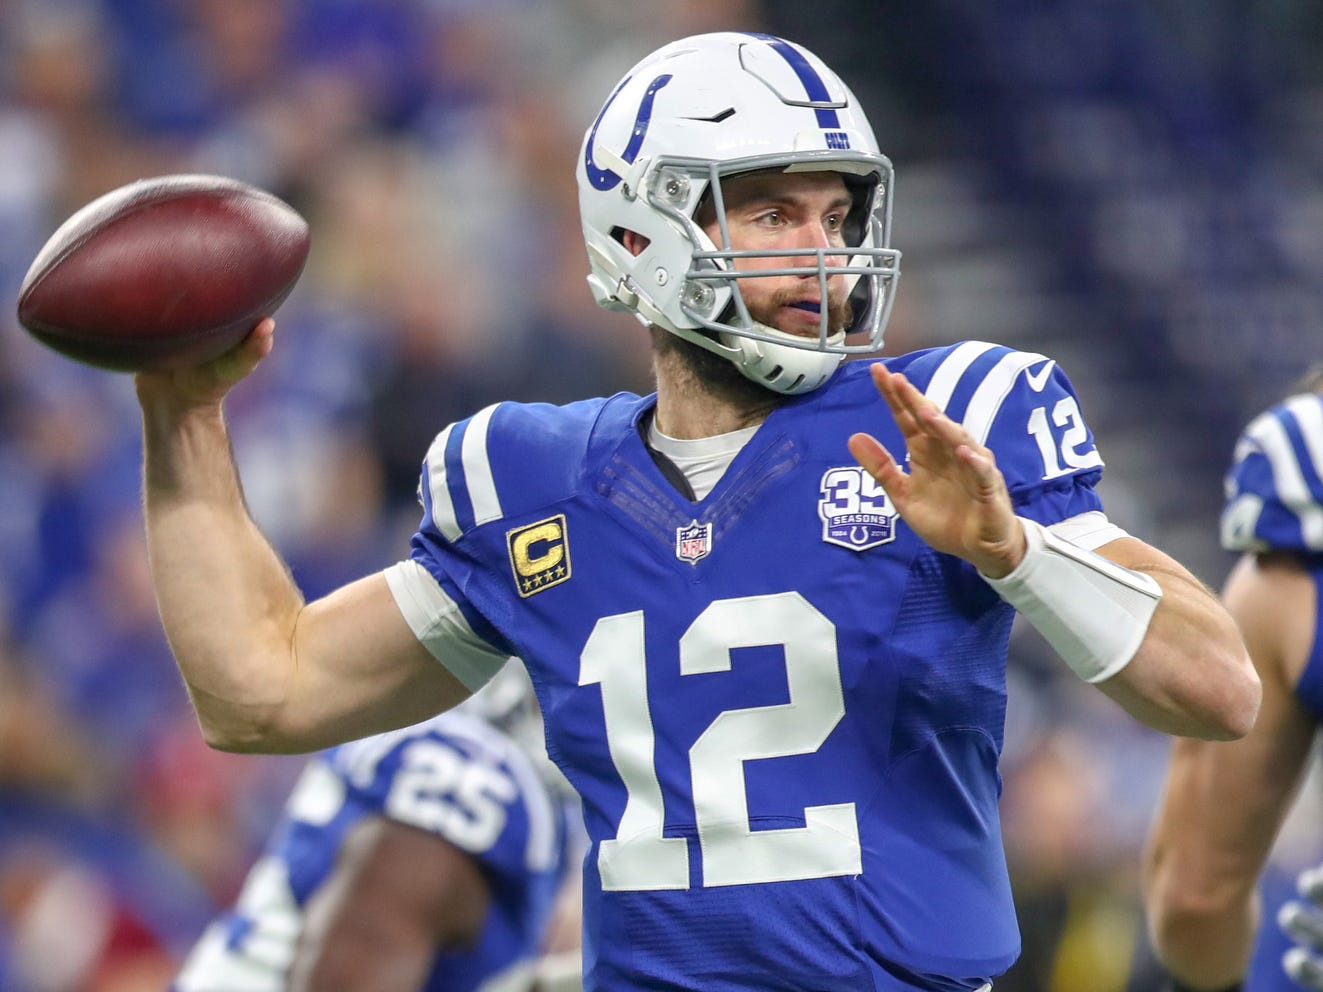 9. Colts (6): Excellent news — Andrew Luck's all-time record against Tennessee is 10-0. Start printing those well-earned playoff tickets, Indy.